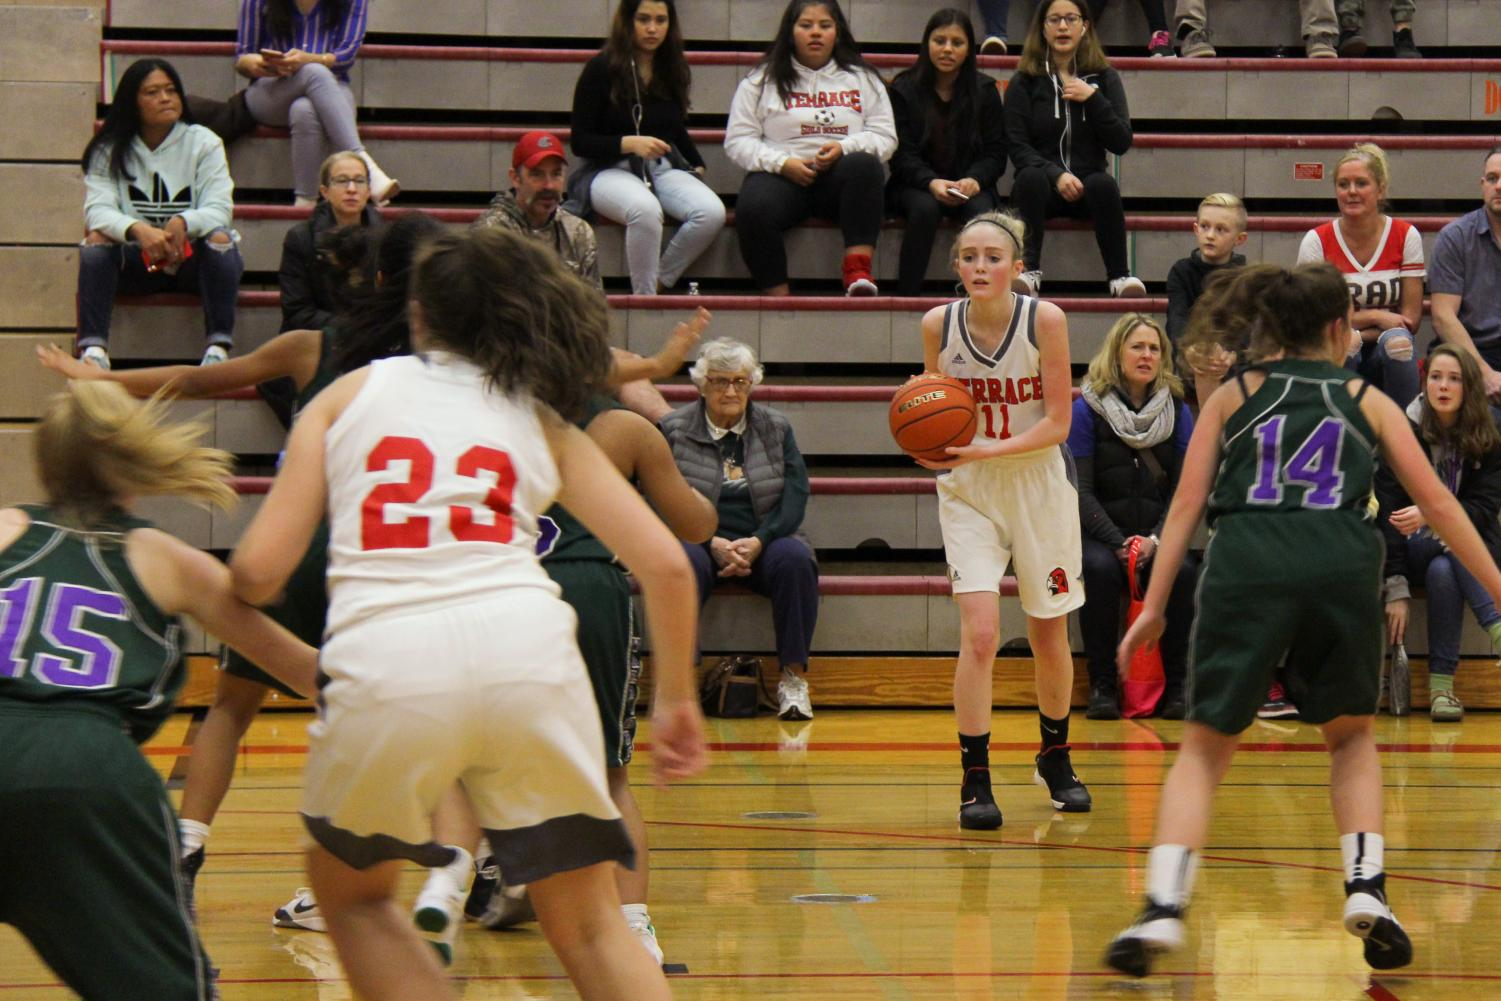 Freshman+wing+Taylor+Stevens+prepares+to+shoot+a+3+point+jump+shot+in+the+2nd+quarter+of+the+Terrace+vs+Woodway+basketball+game.